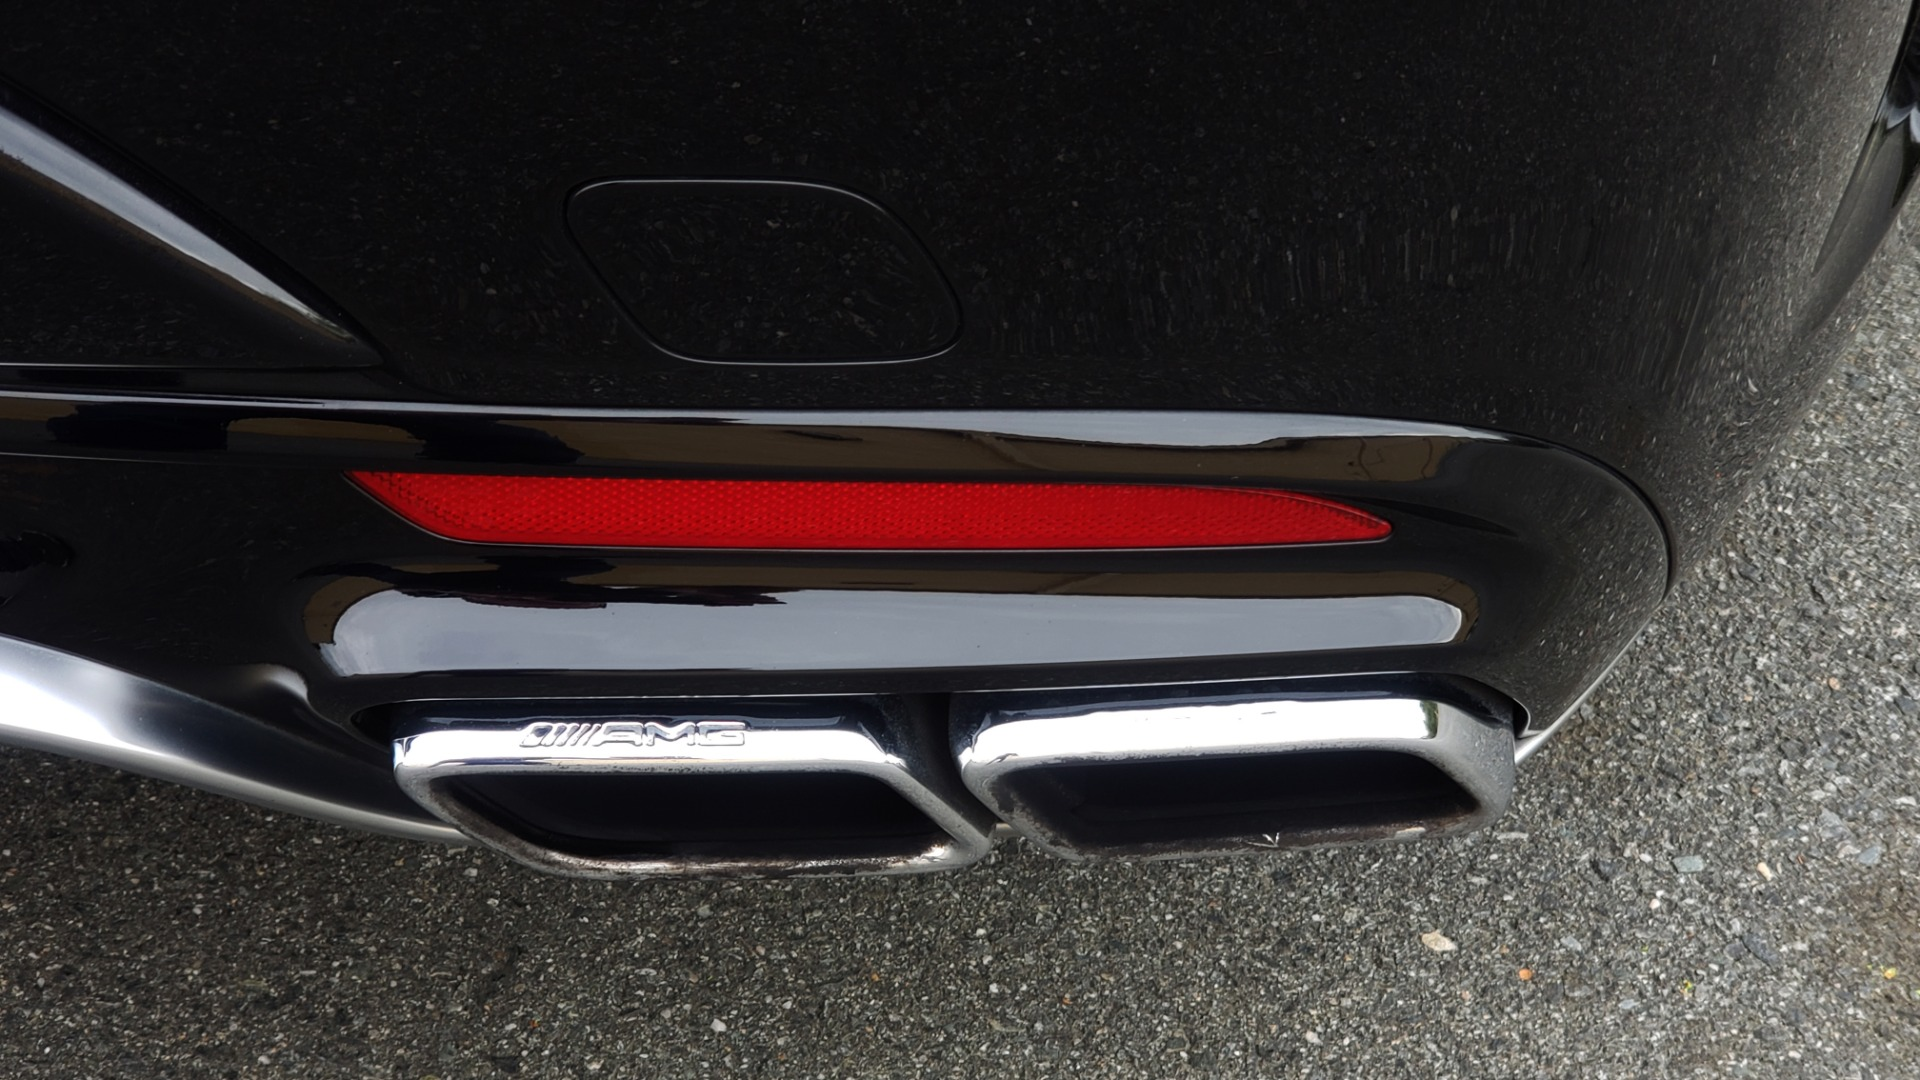 Used 2015 Mercedes-Benz S-CLASS S 63 AMG 4MATIC / DRVR ASST / NIGHT VIEW ASST PLUS / MAGIC SKY for sale Sold at Formula Imports in Charlotte NC 28227 41